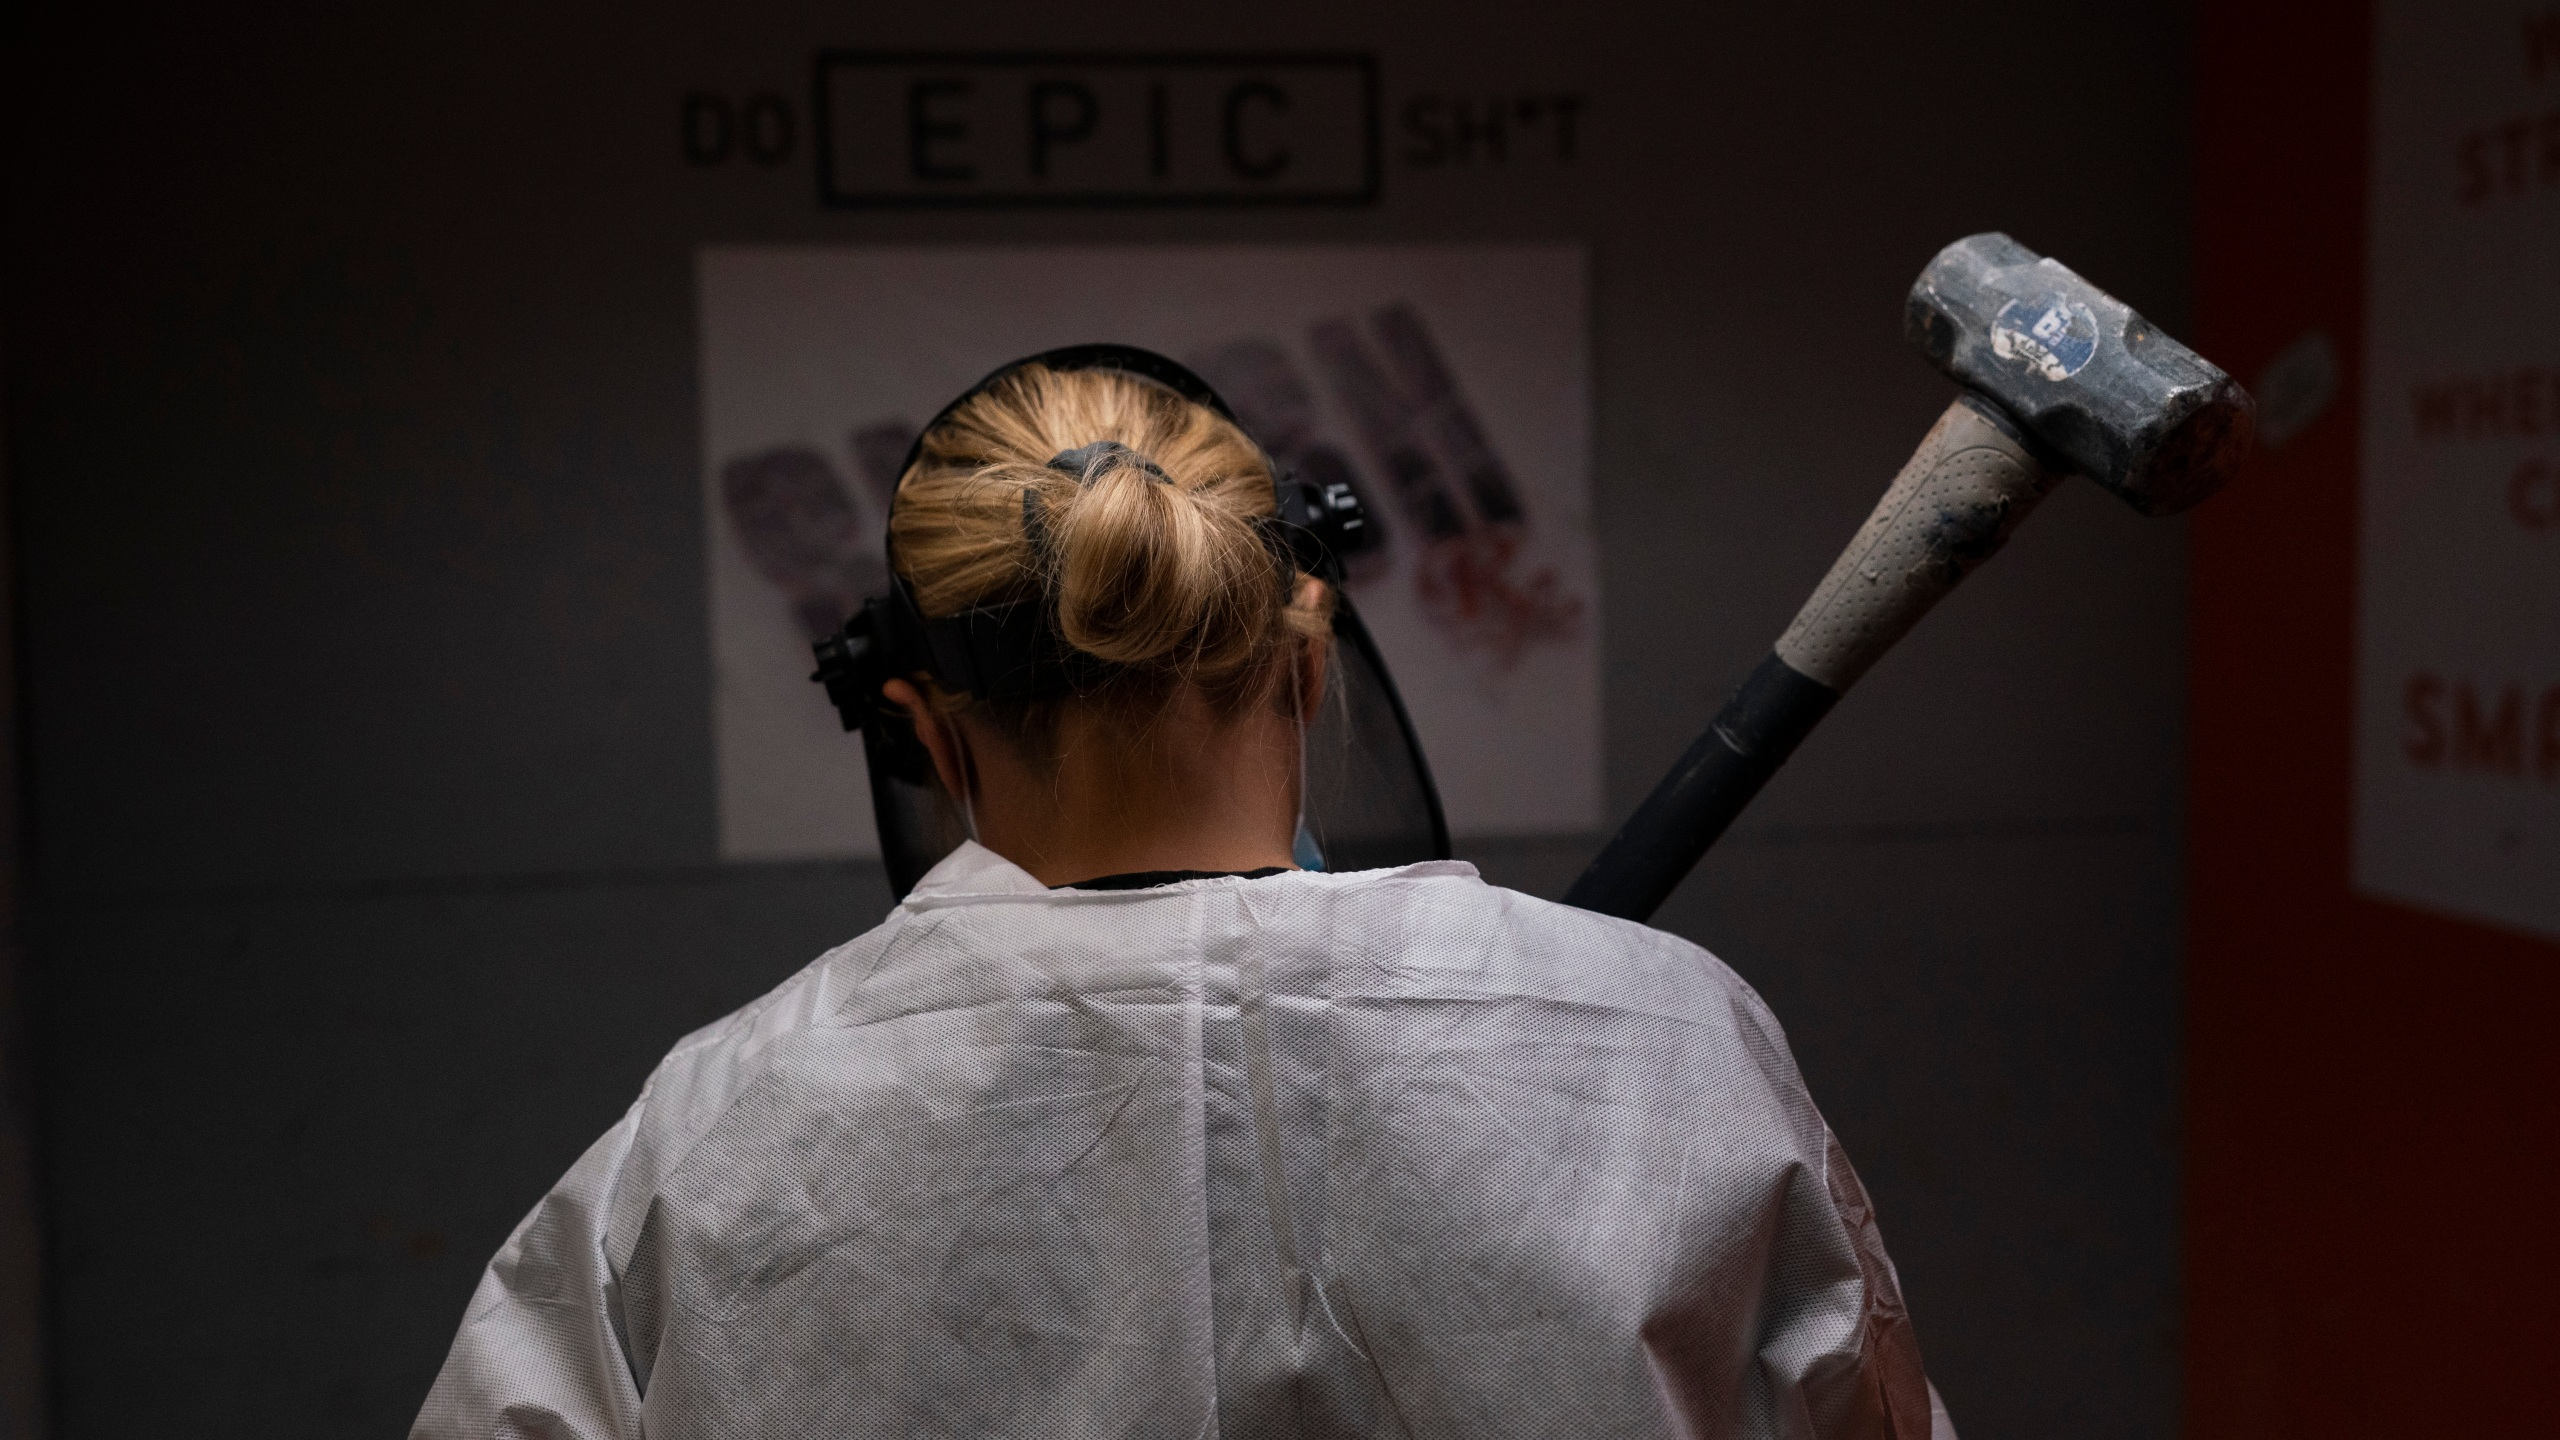 Michelle Elohim, a mother of four children, holds a hammer to smash a side table in a rage room at Smash RX in Westlake Village on Feb. 5, 2021. (Jae C. Hong / Associated Press)